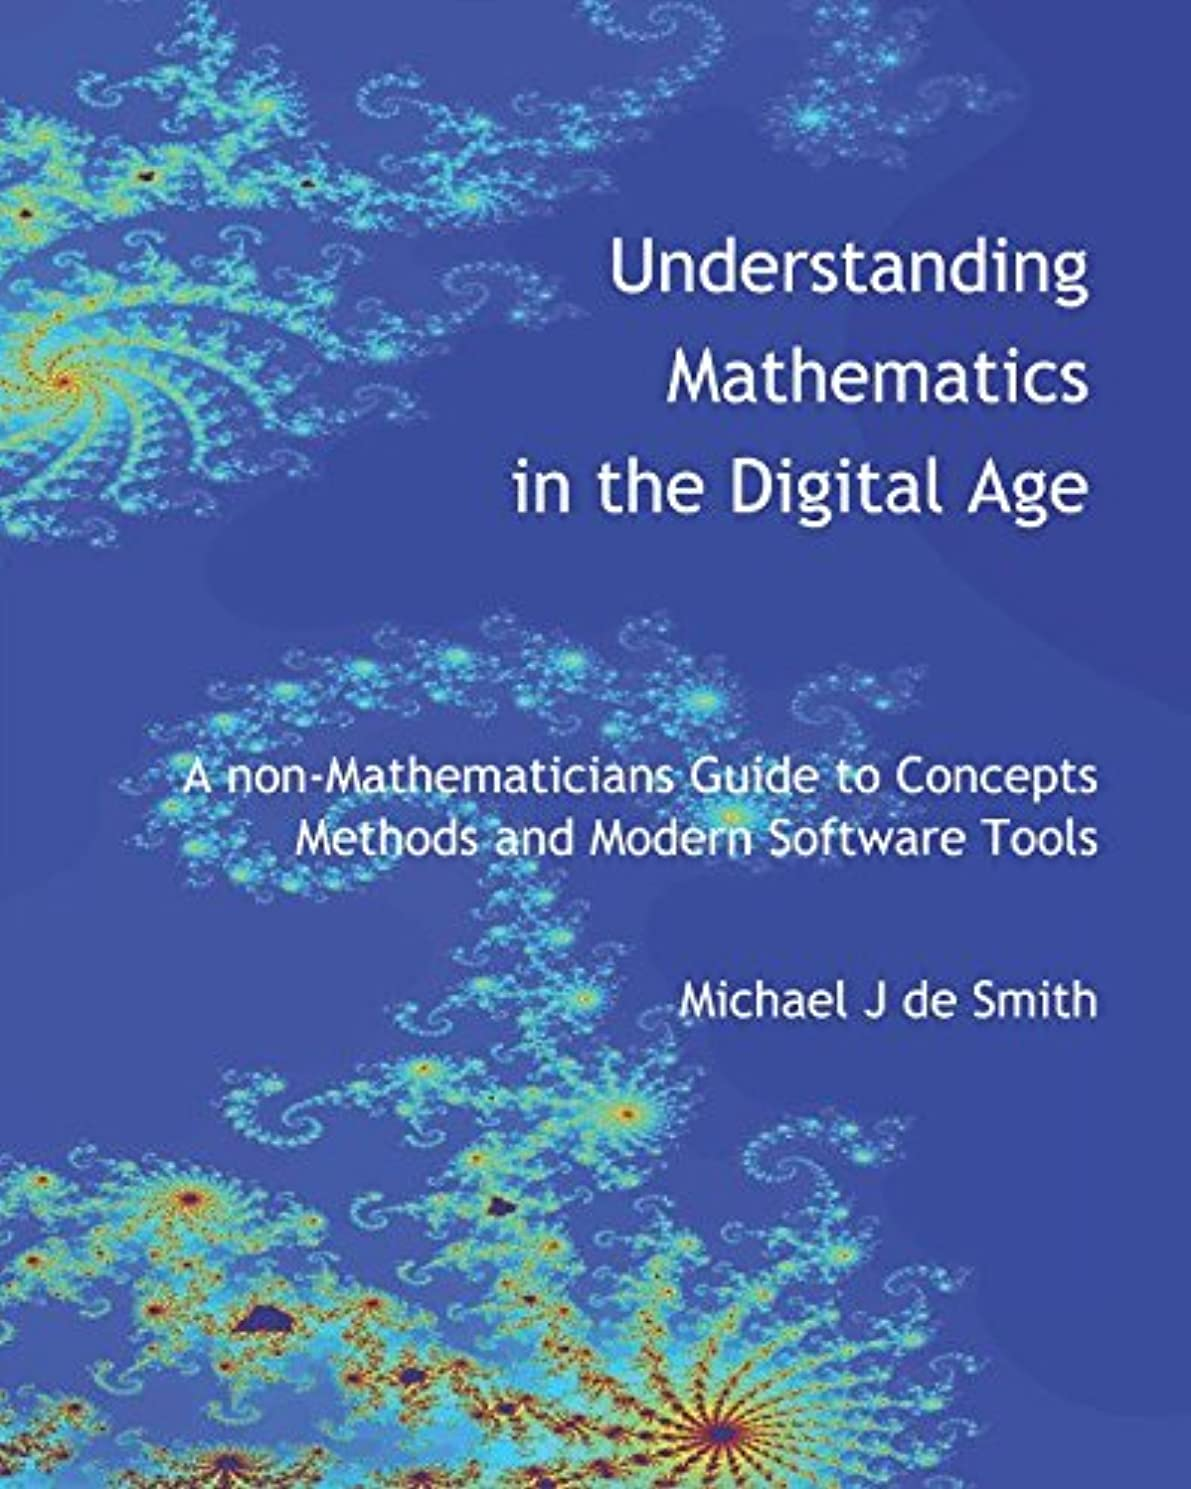 Understanding Mathematics in the Digital Age: A non-Mathematicians Guide to Concepts, Methods and Modern Software Tools